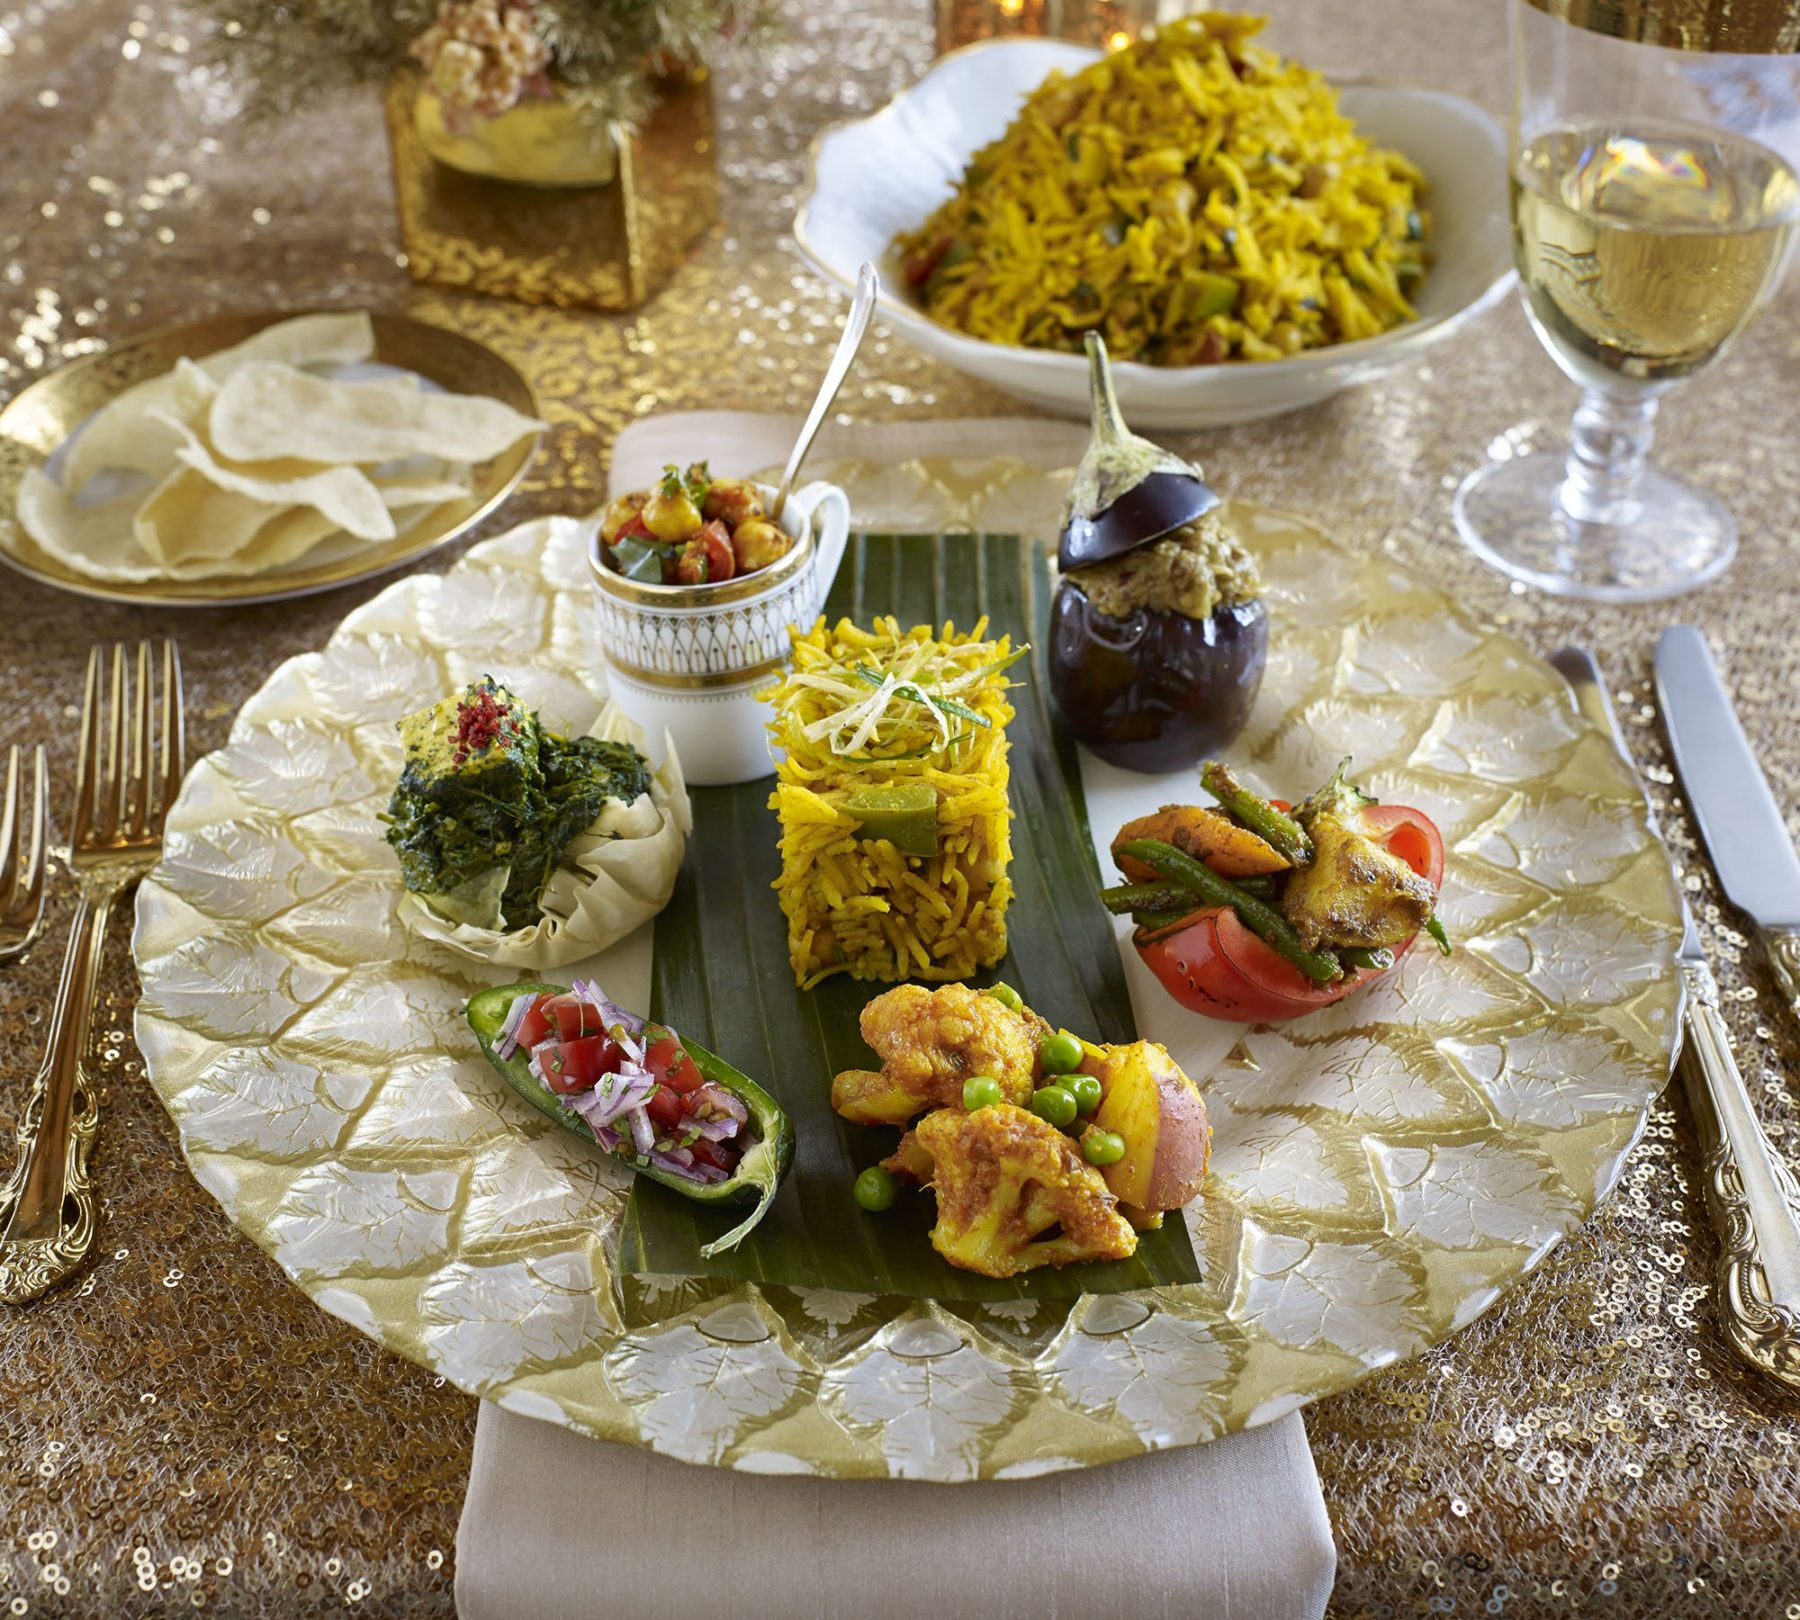 Asian Wedding Food Caterers: The Evolution Of The South Asian Wedding